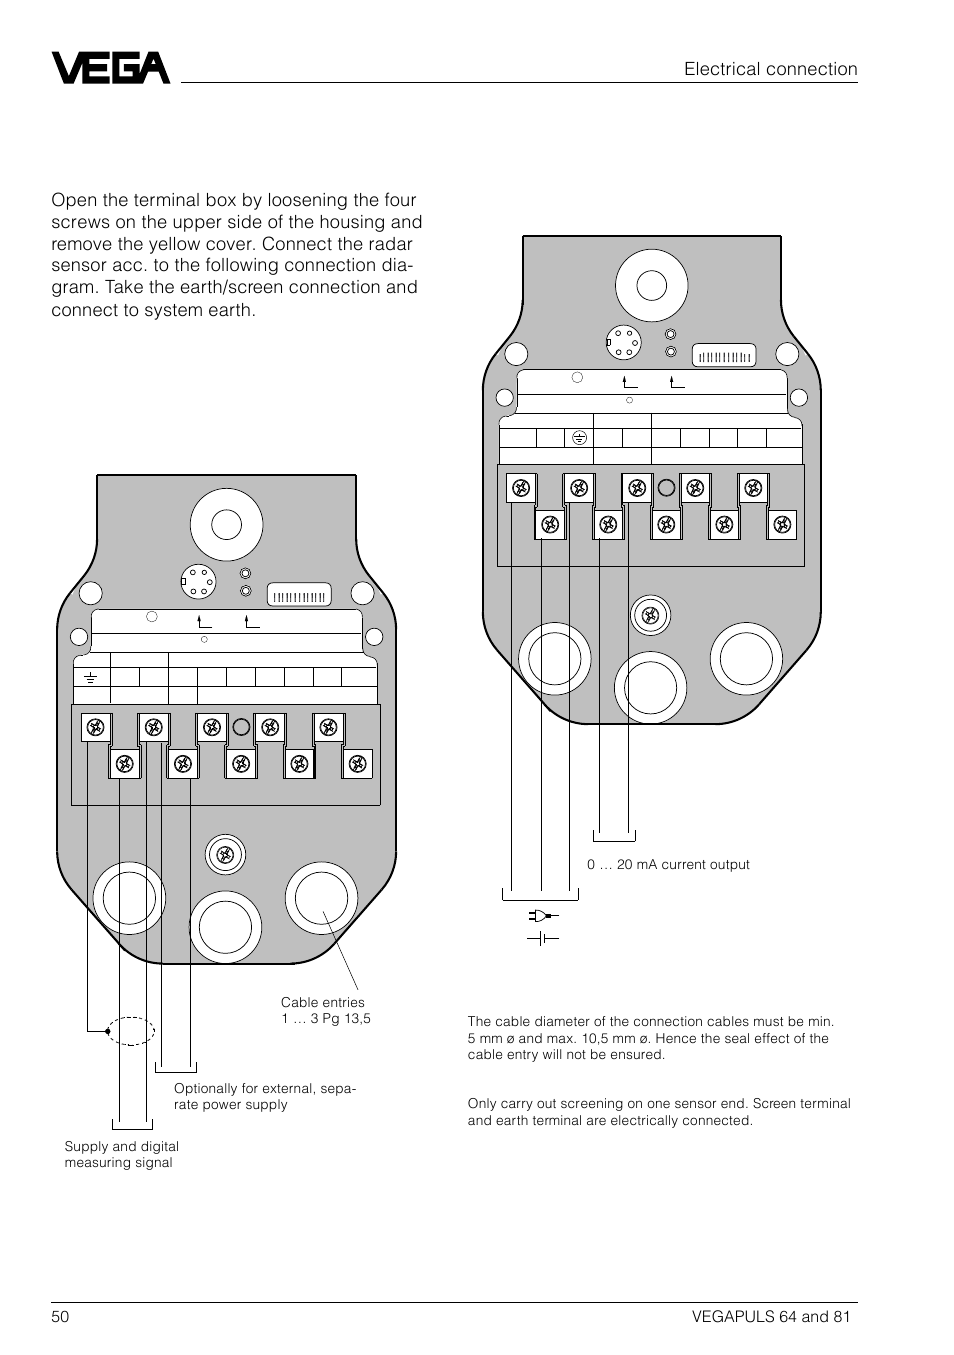 Wiring Diagram Yamaha Vega : Wiring diagrams yamaha vega r steering diagram